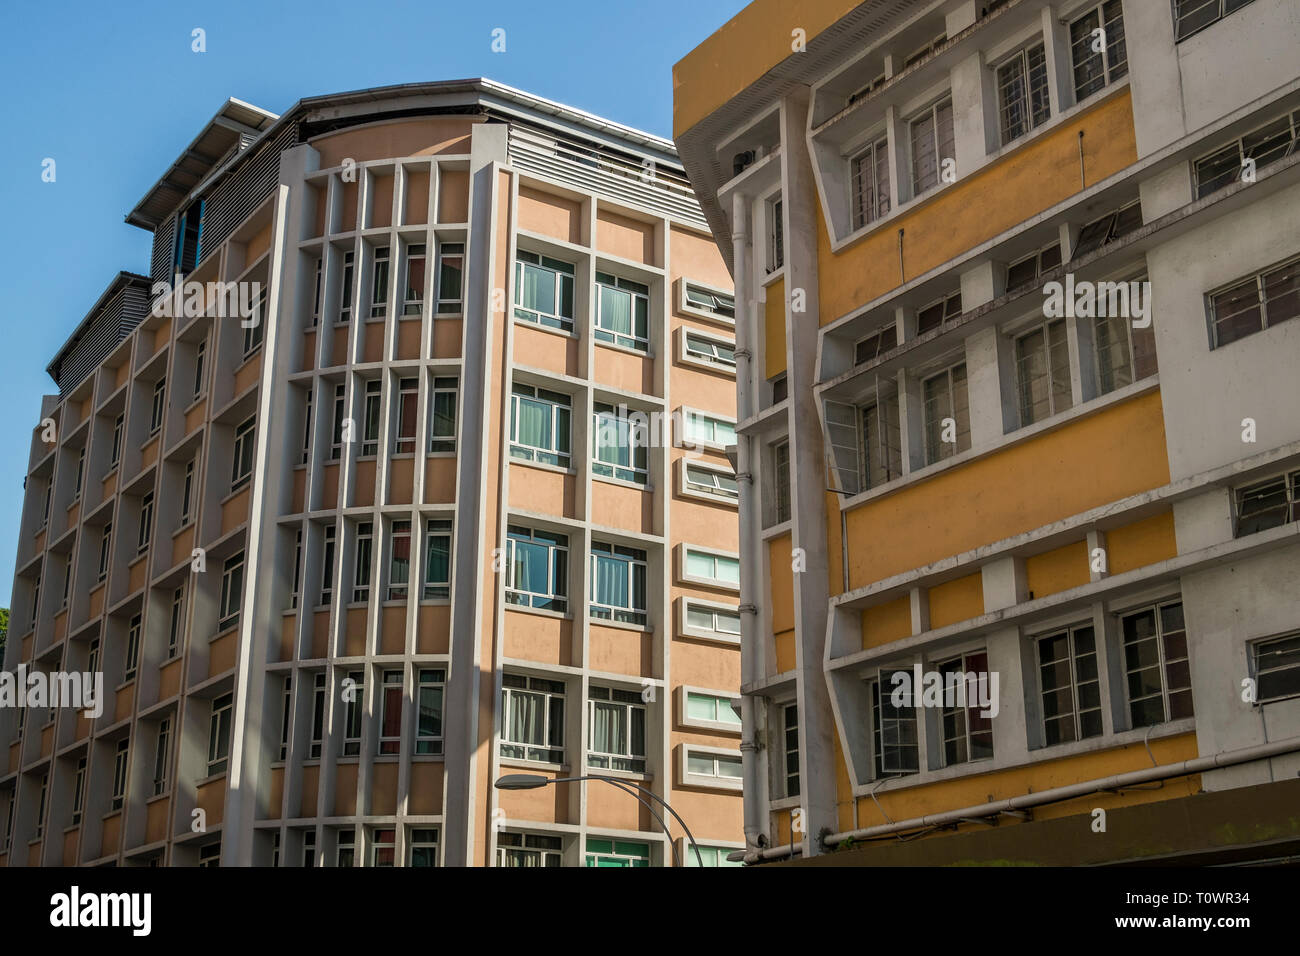 Typical 1960's architecture in Kota Kinabalu, Sabah, Borneo, Malaysia. - Stock Image